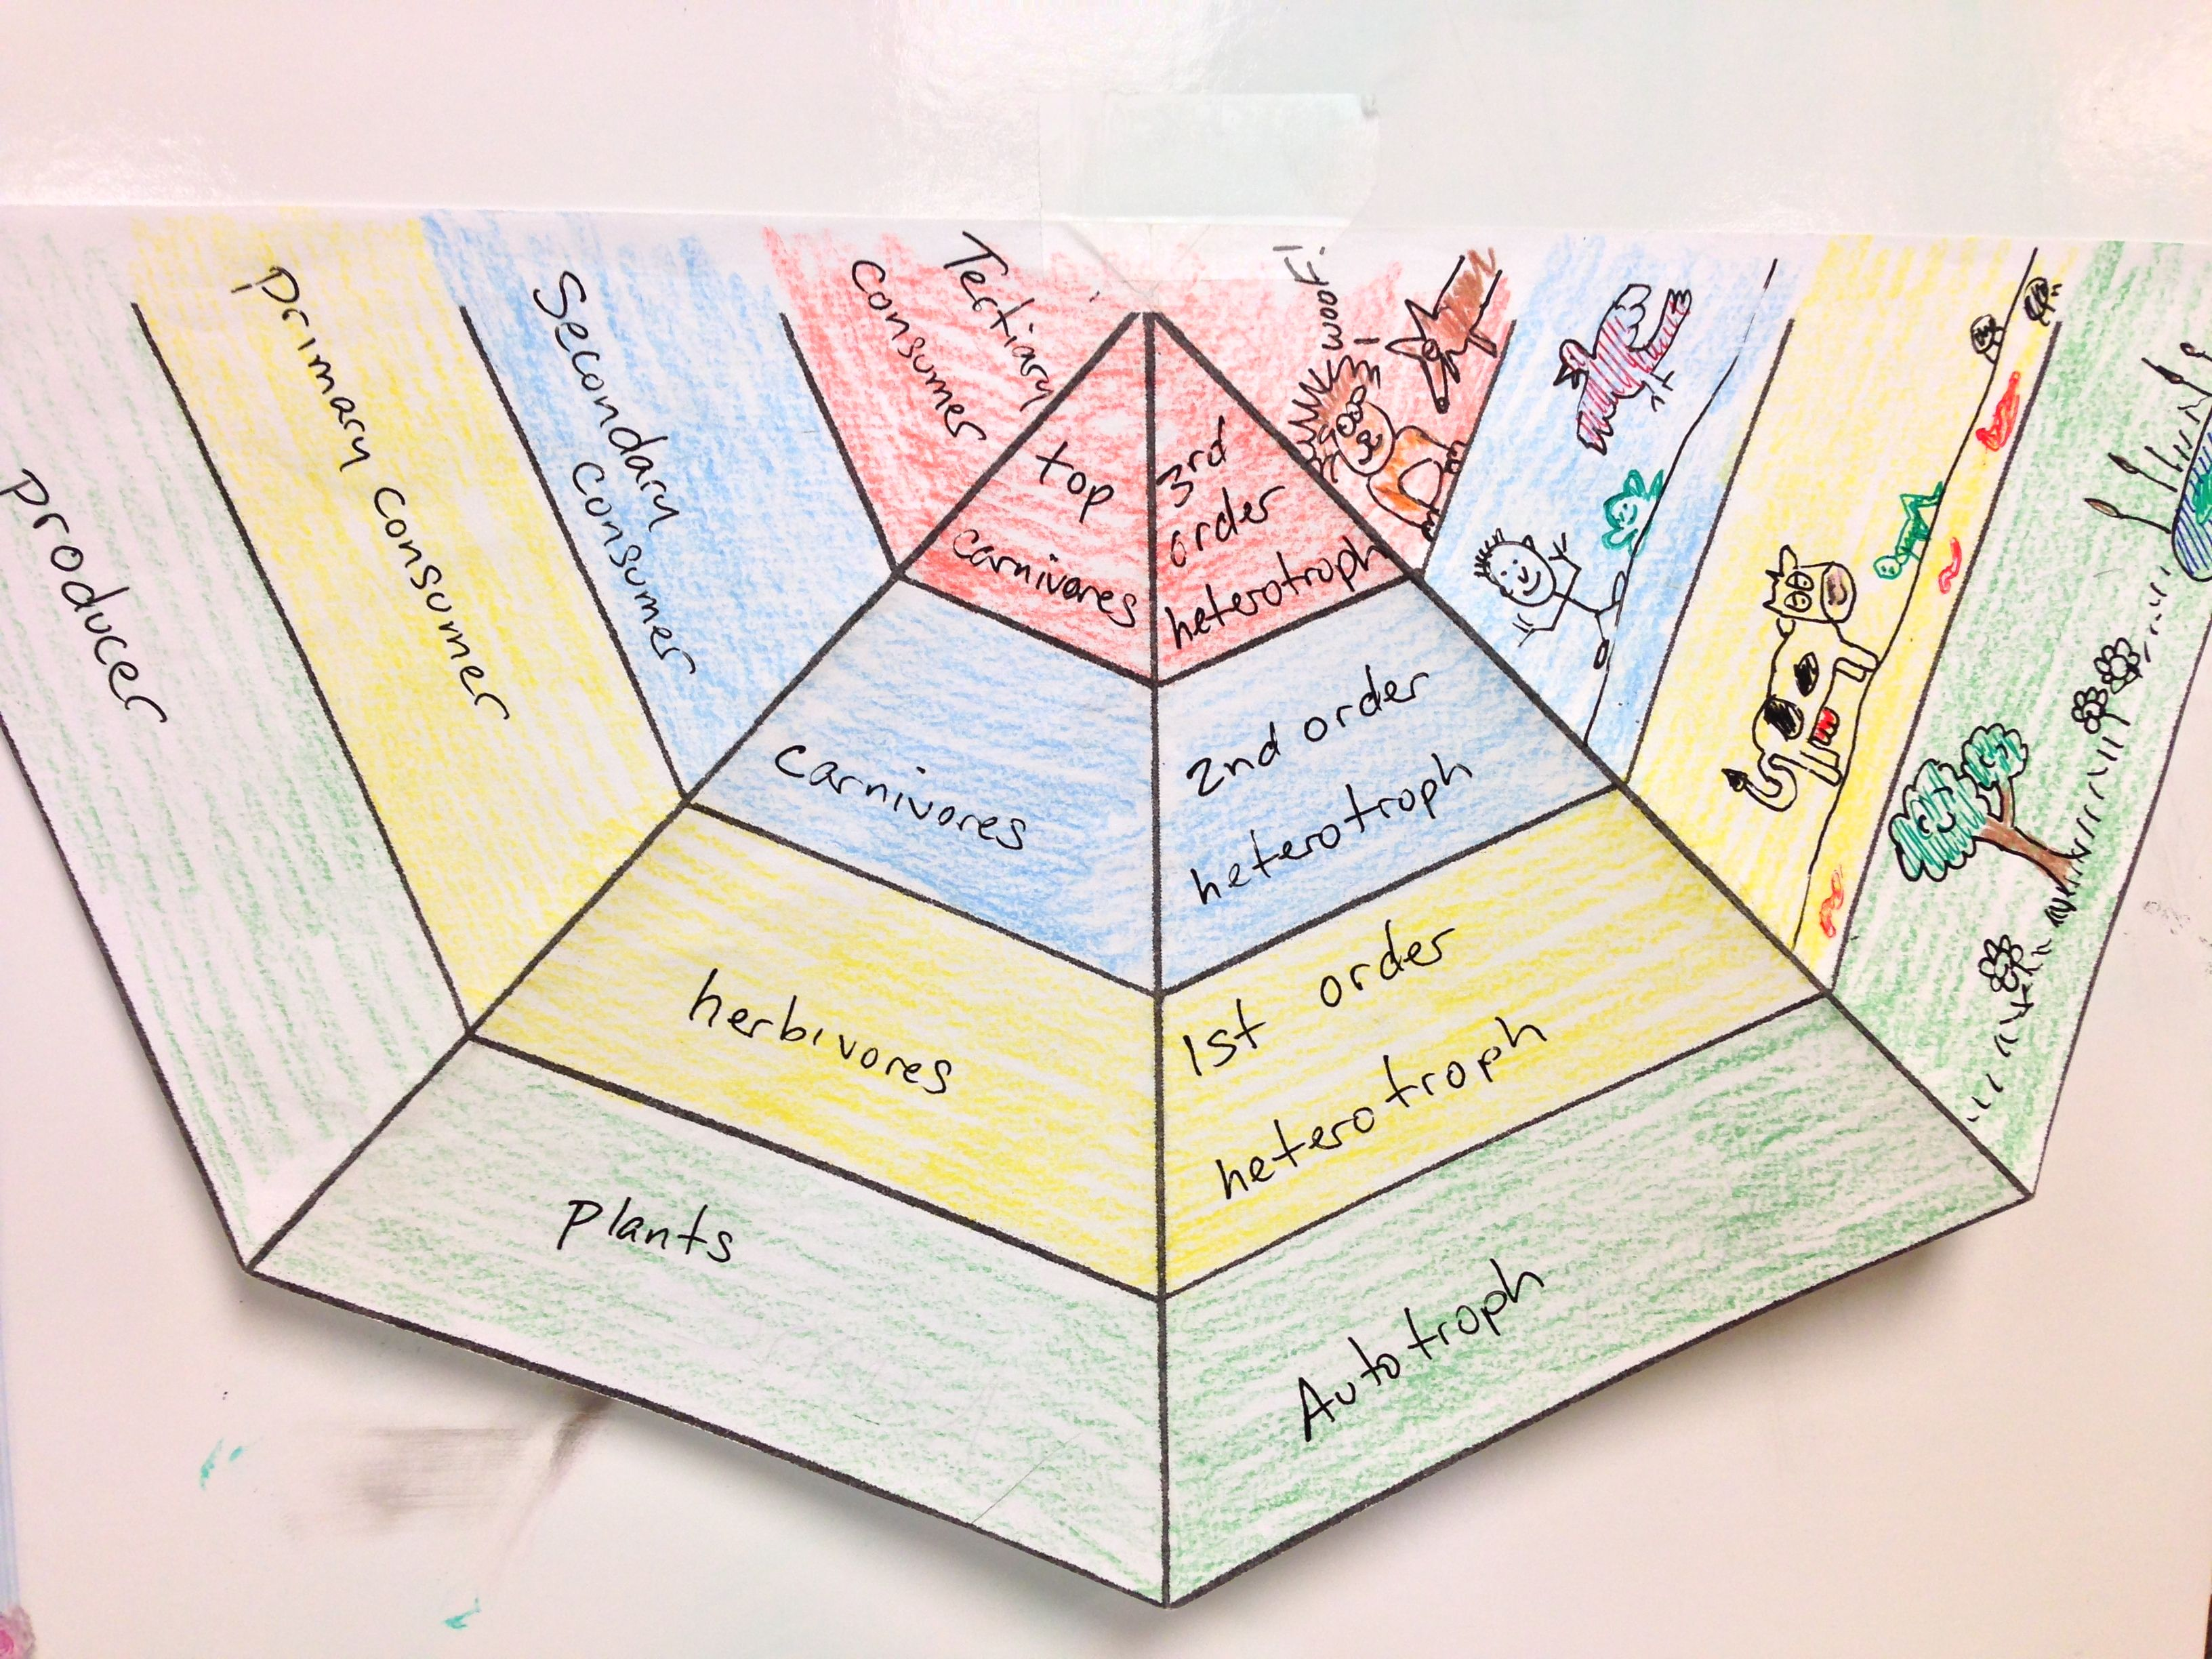 Worksheets Ecological Pyramid Worksheet 1000 ideas about ecological pyramid on pinterest food webs here is a cool multisensory activity idea for learning the energy coloring worksheet